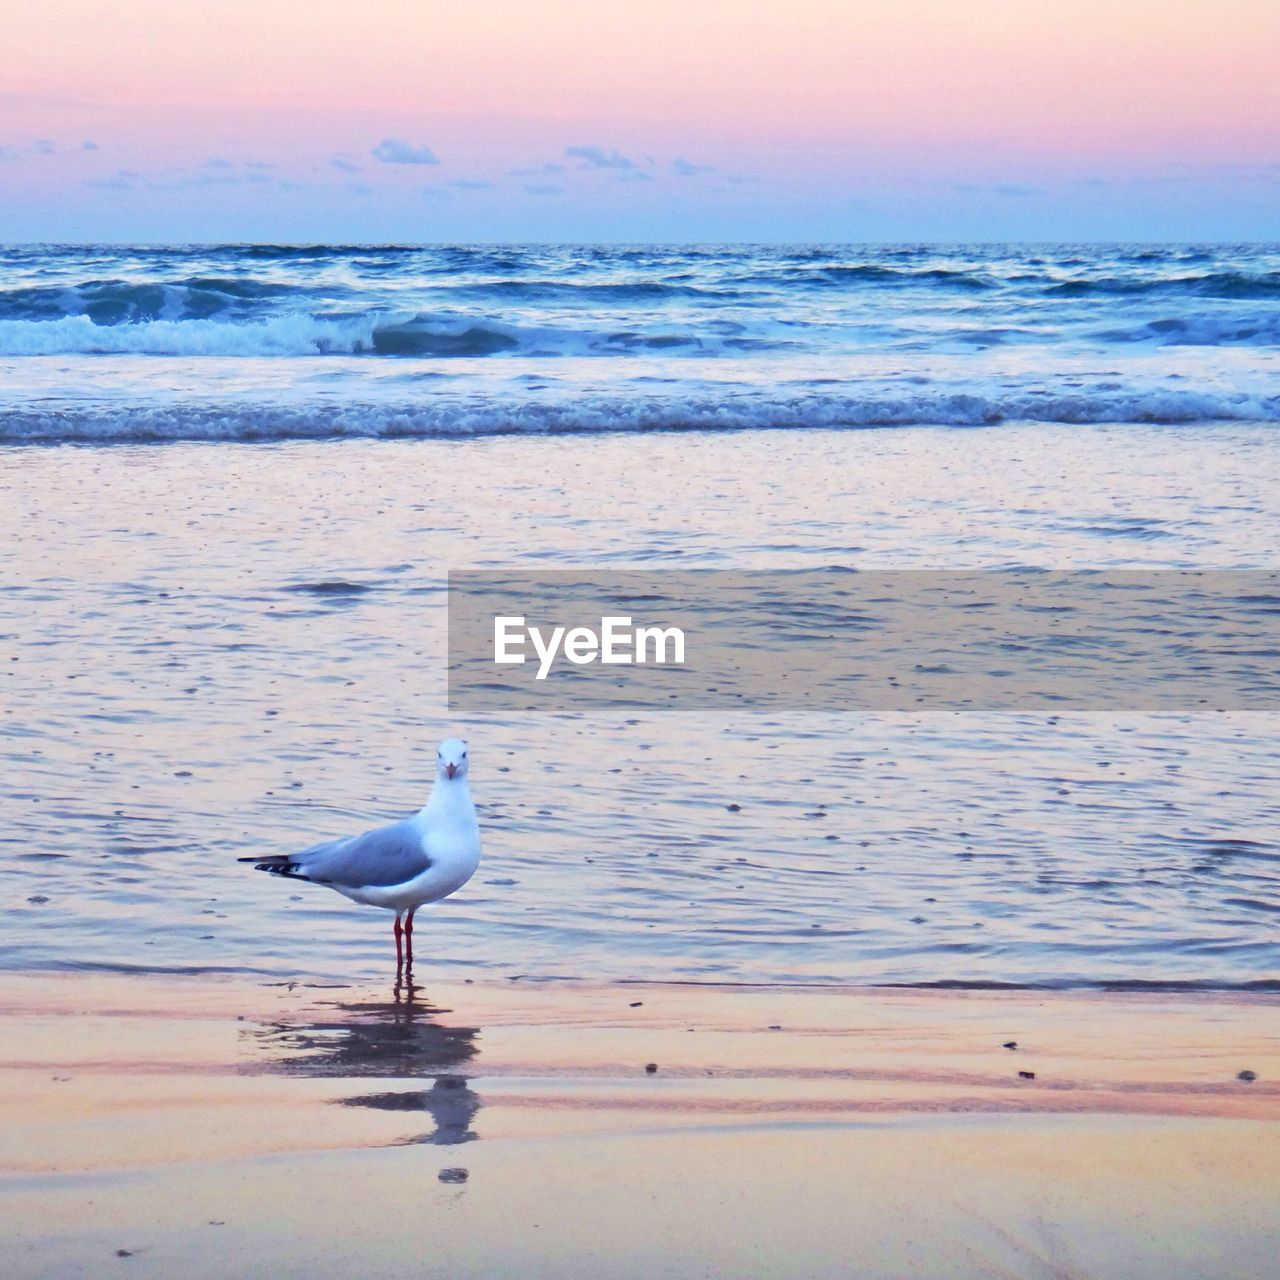 water, bird, sea, nature, one animal, animals in the wild, animal themes, sunset, beach, beauty in nature, shore, horizon over water, animal wildlife, scenics, no people, tranquility, tranquil scene, outdoors, sand, day, sky